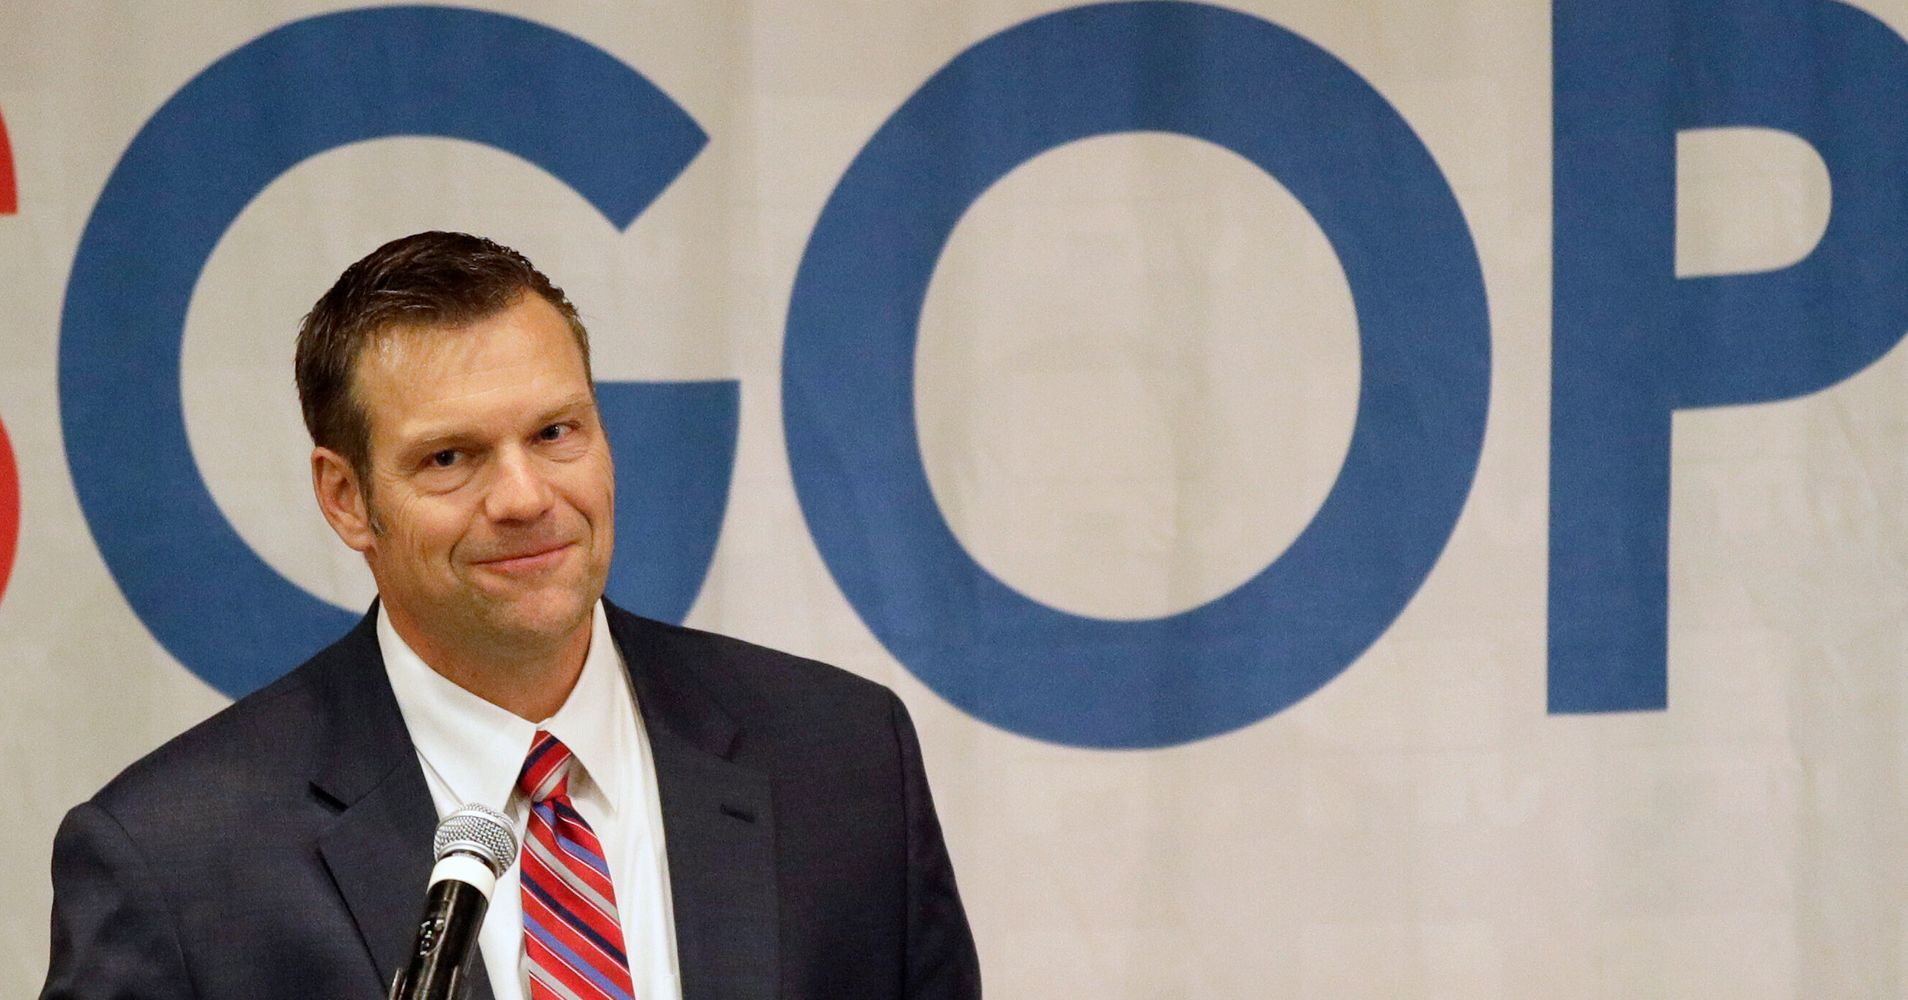 Kris Kobach Announces Bid For U.S. Senate